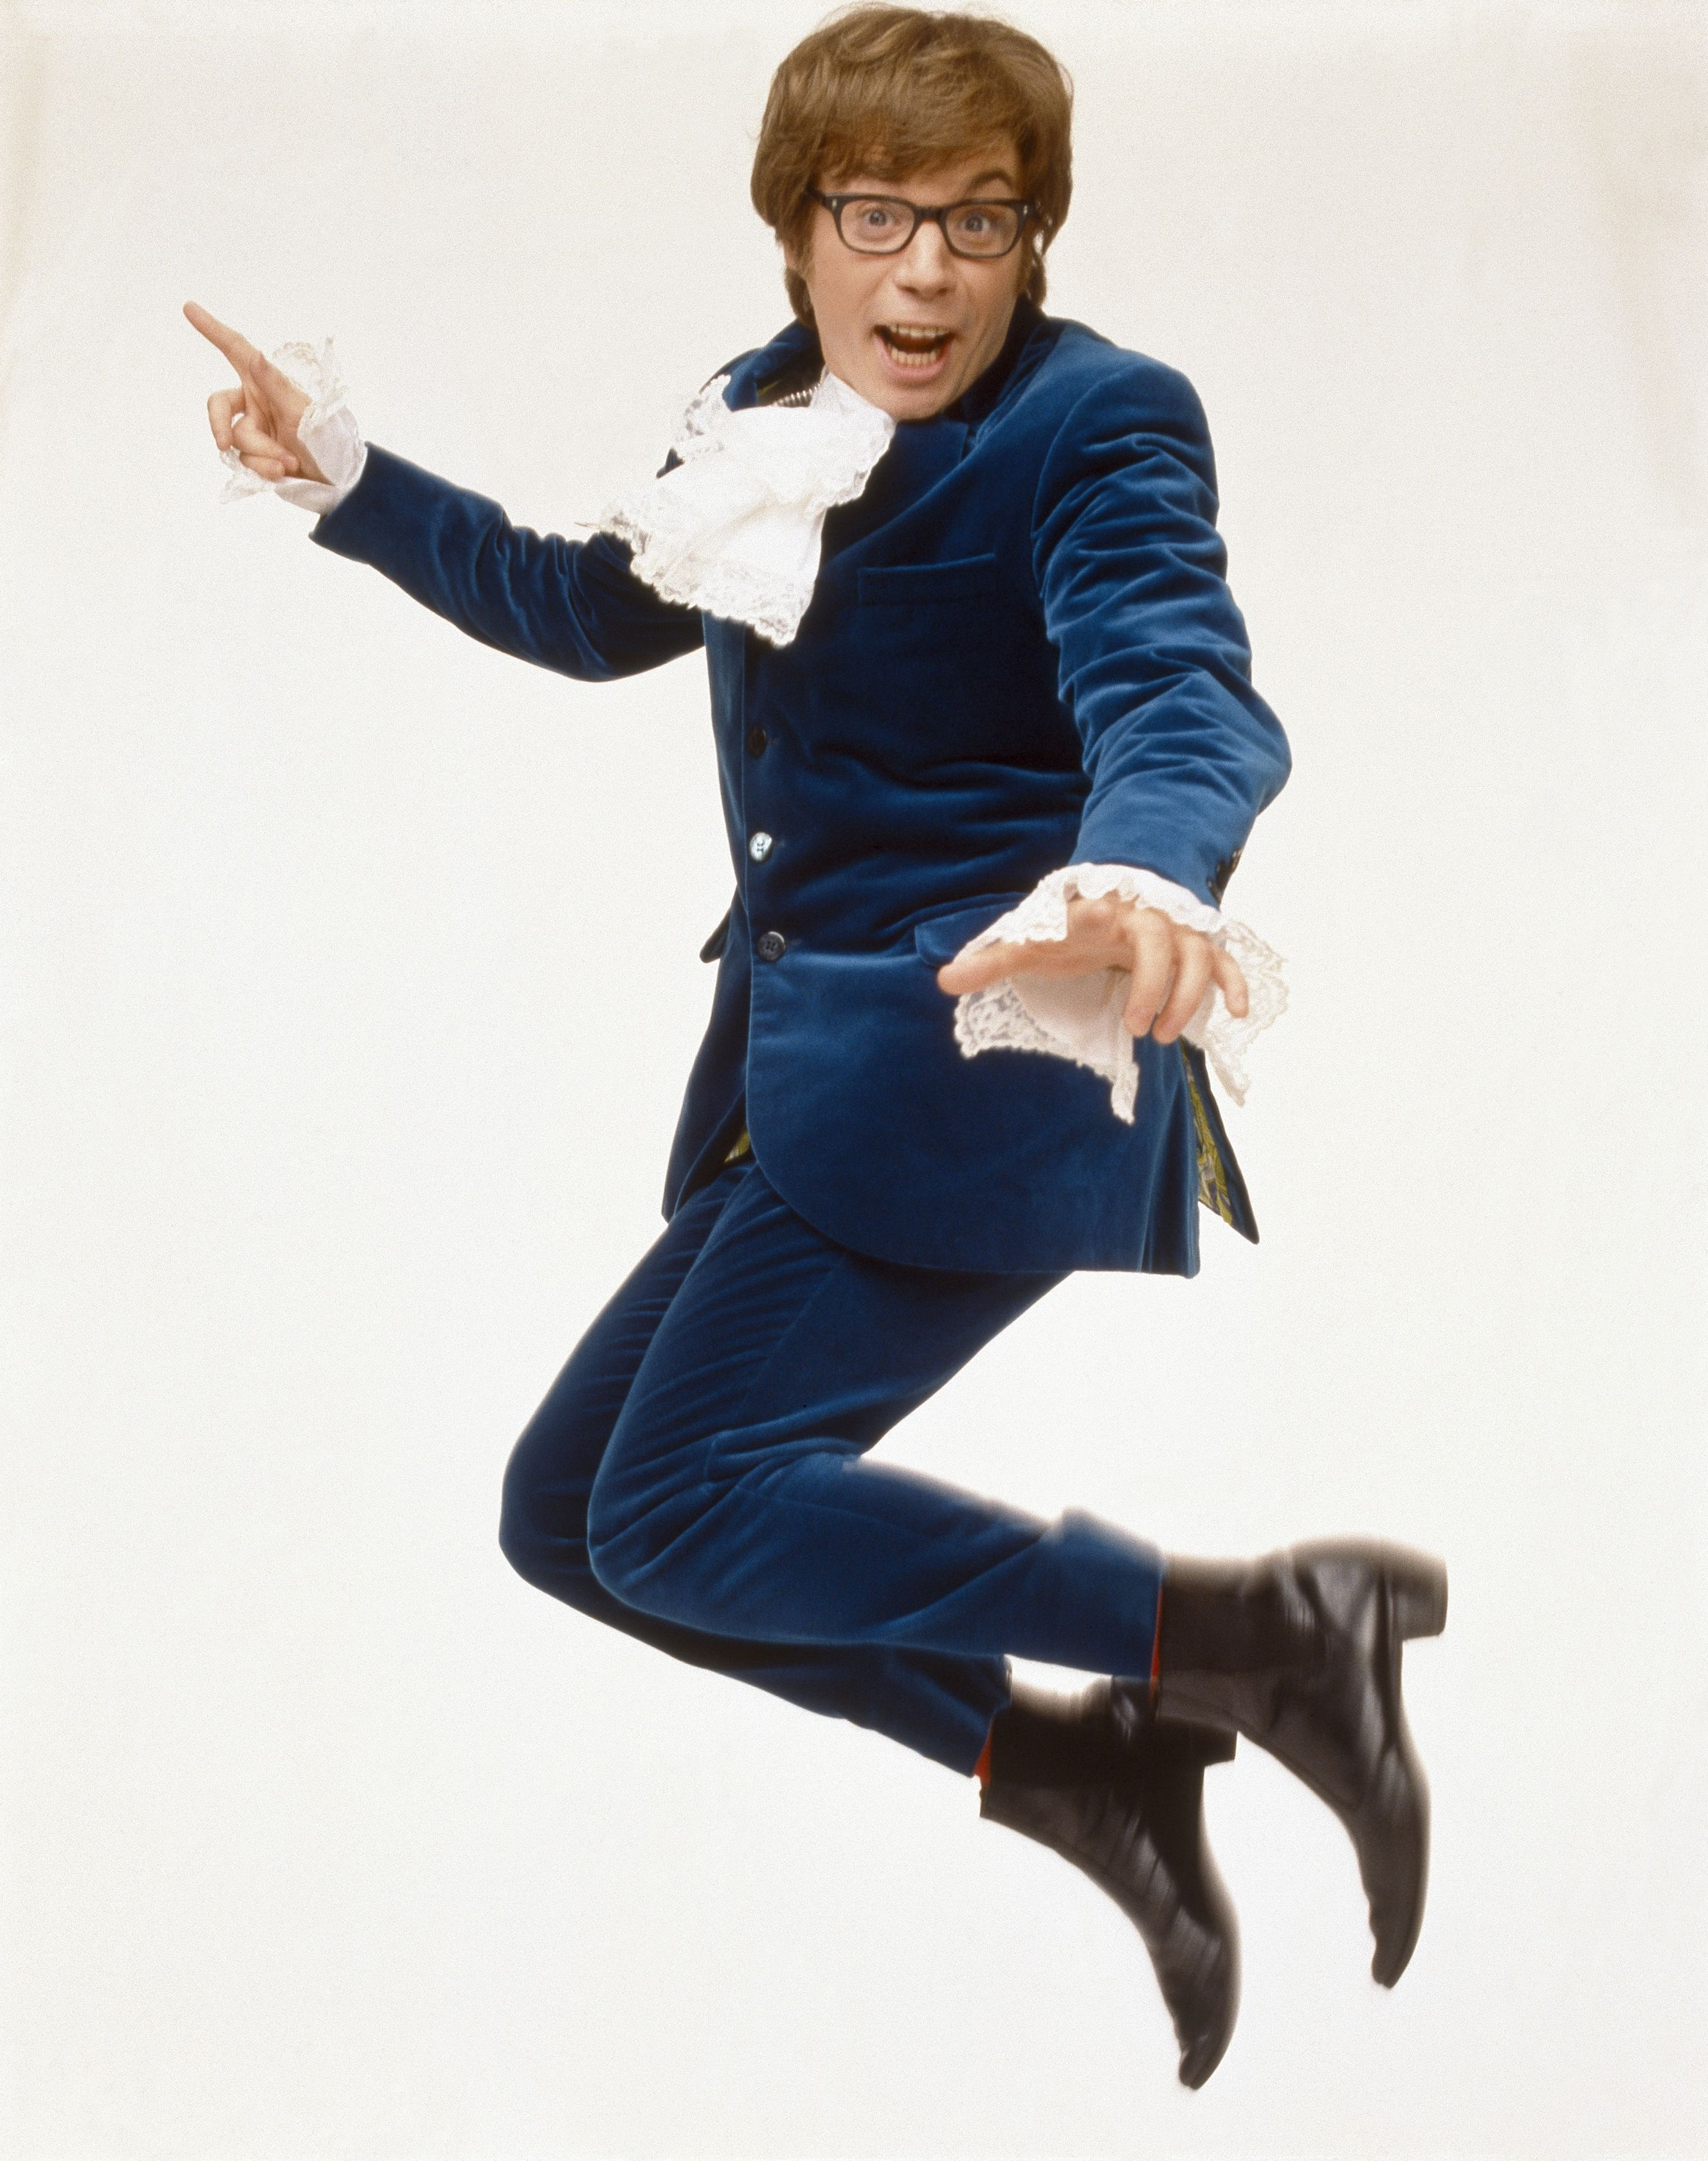 Download Wallpapers, Download Austin Powers Mike Myers - Austin Powers High Res , HD Wallpaper & Backgrounds